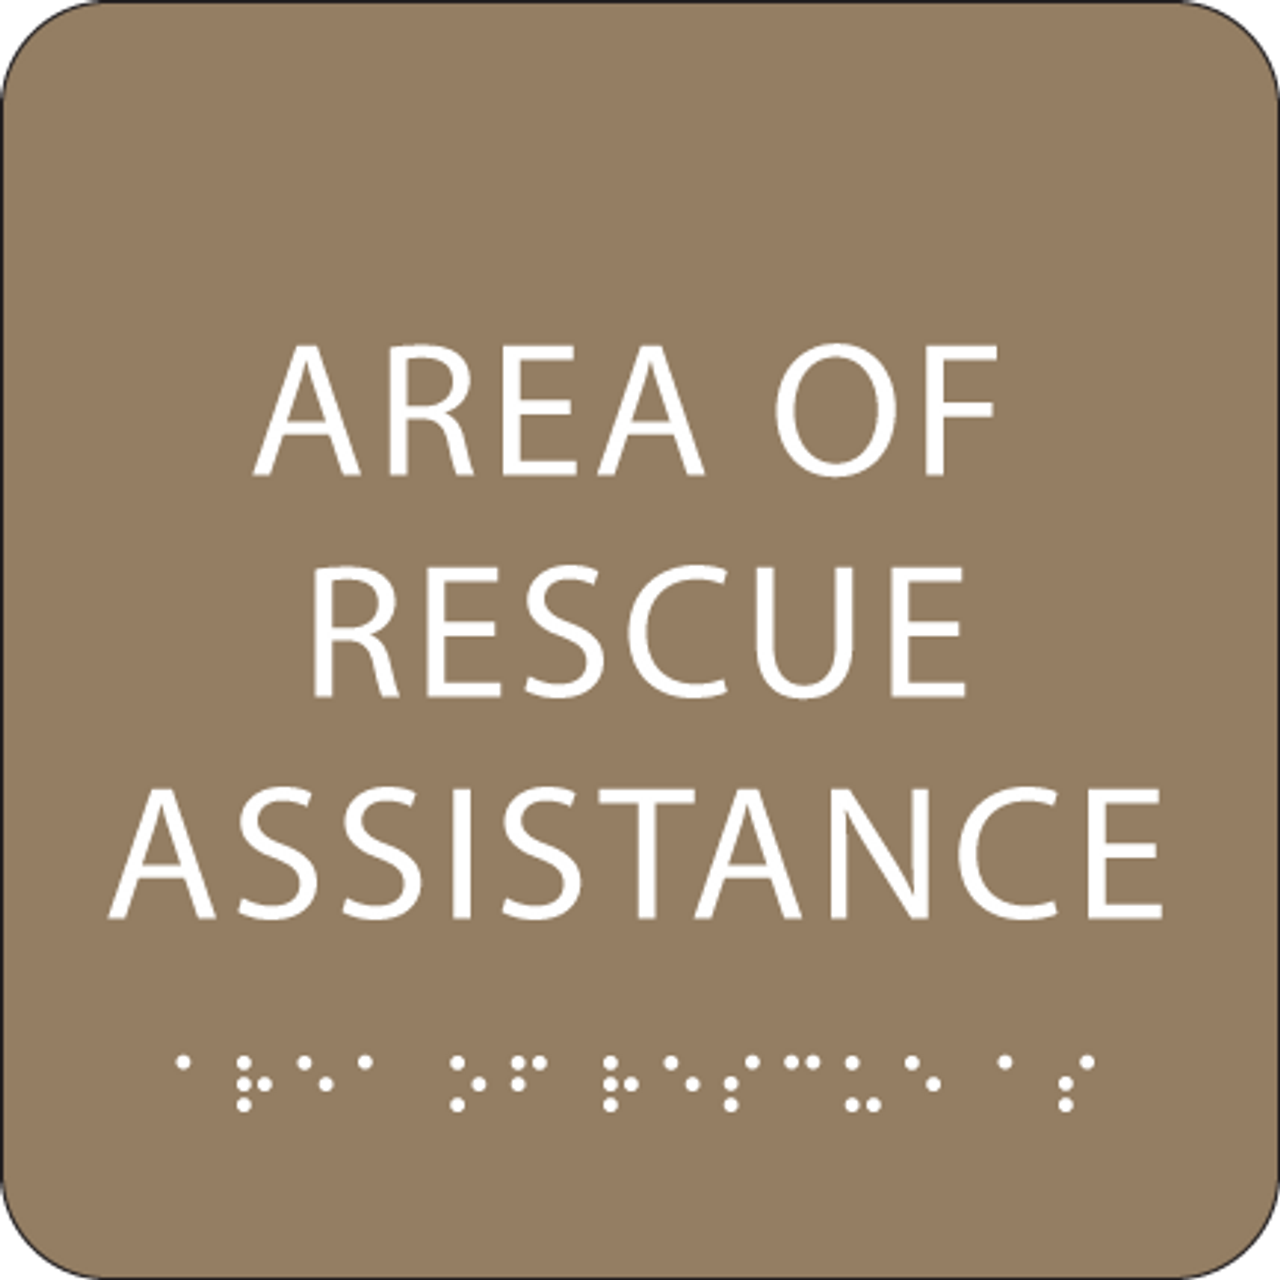 Brown Area of Rescue Assistance ADA Sign